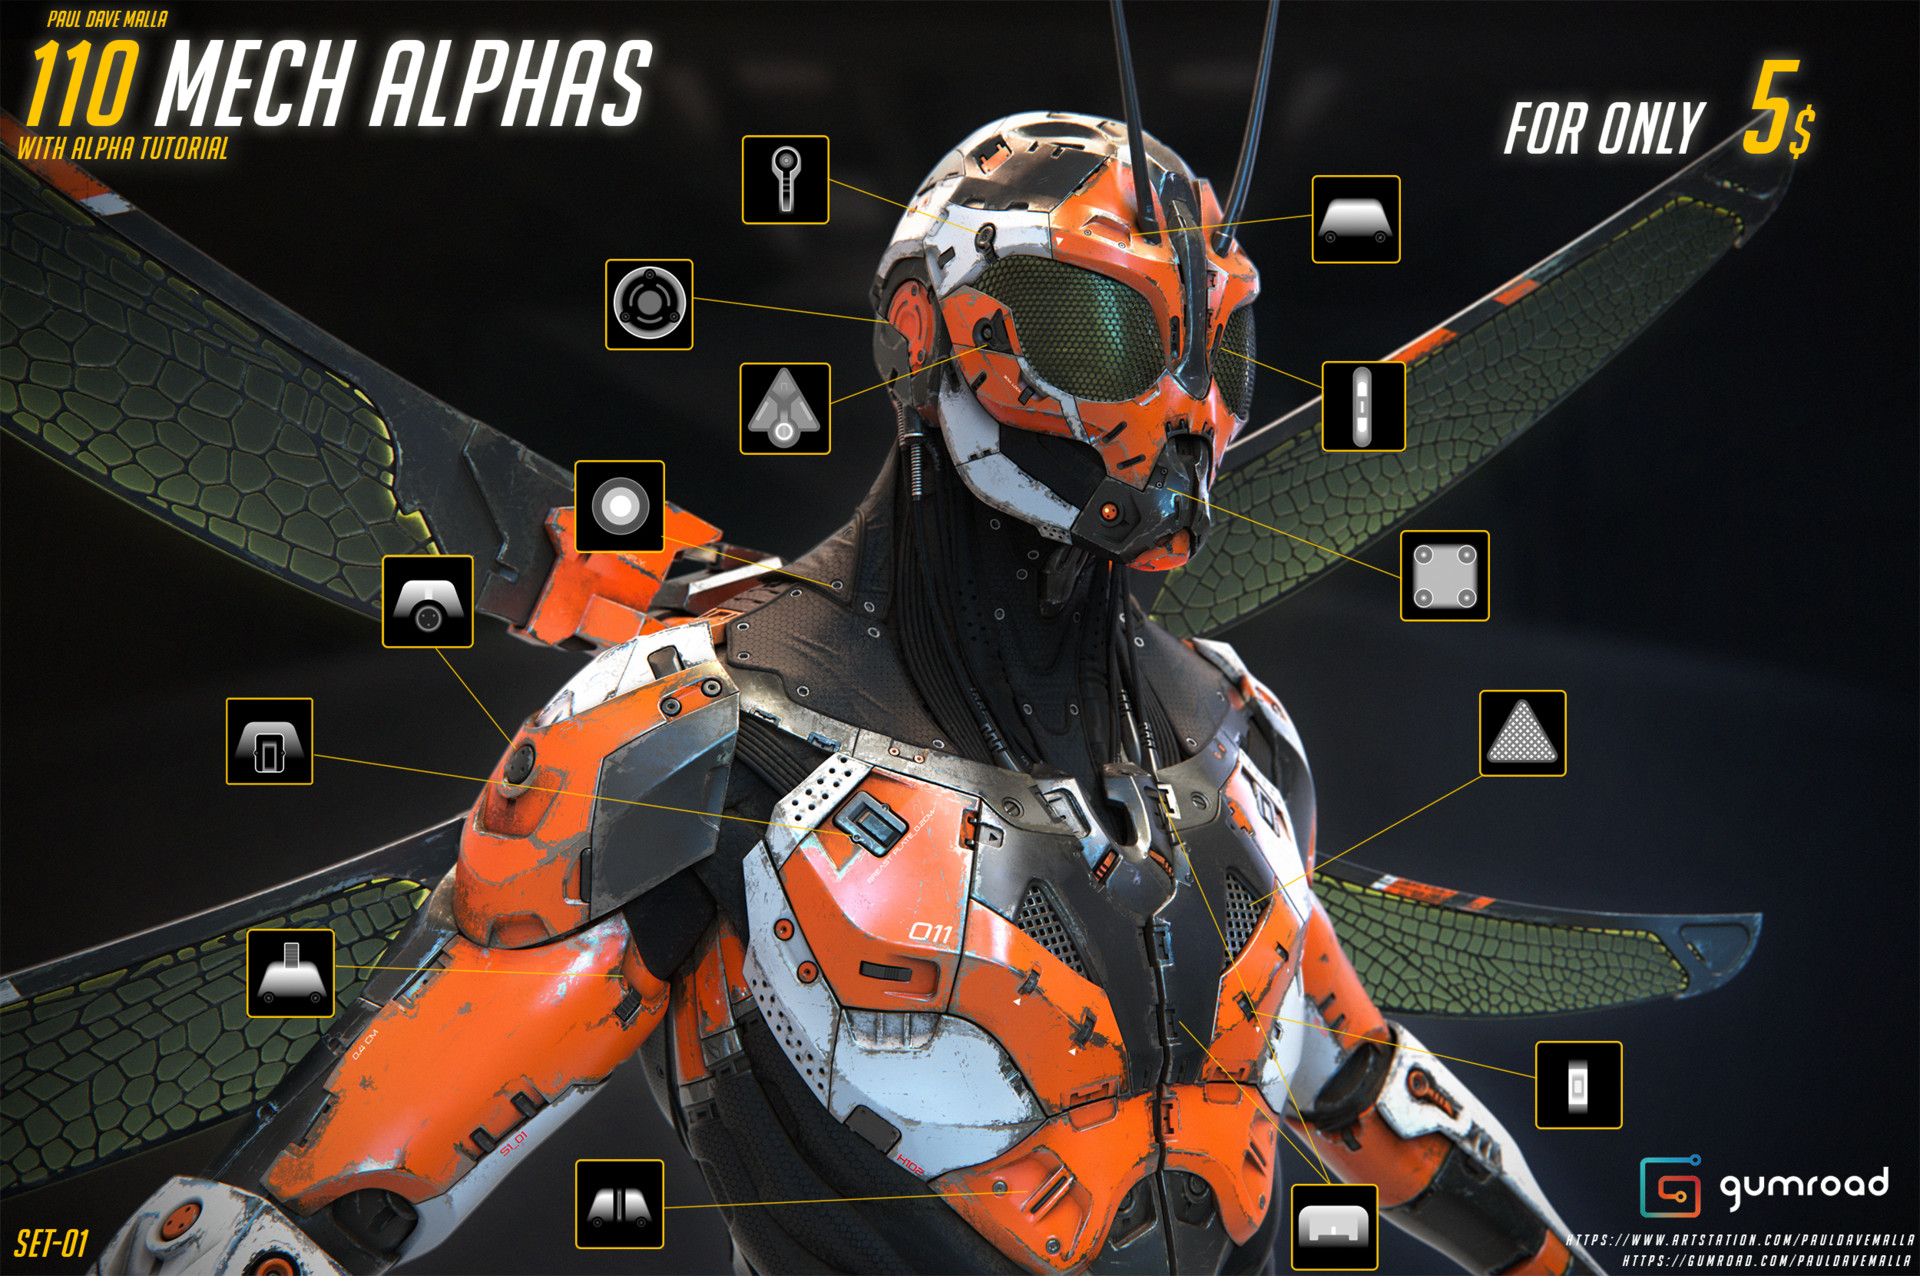 paul-dave-malla-110-mech-alphas-set-01-cover.jpg